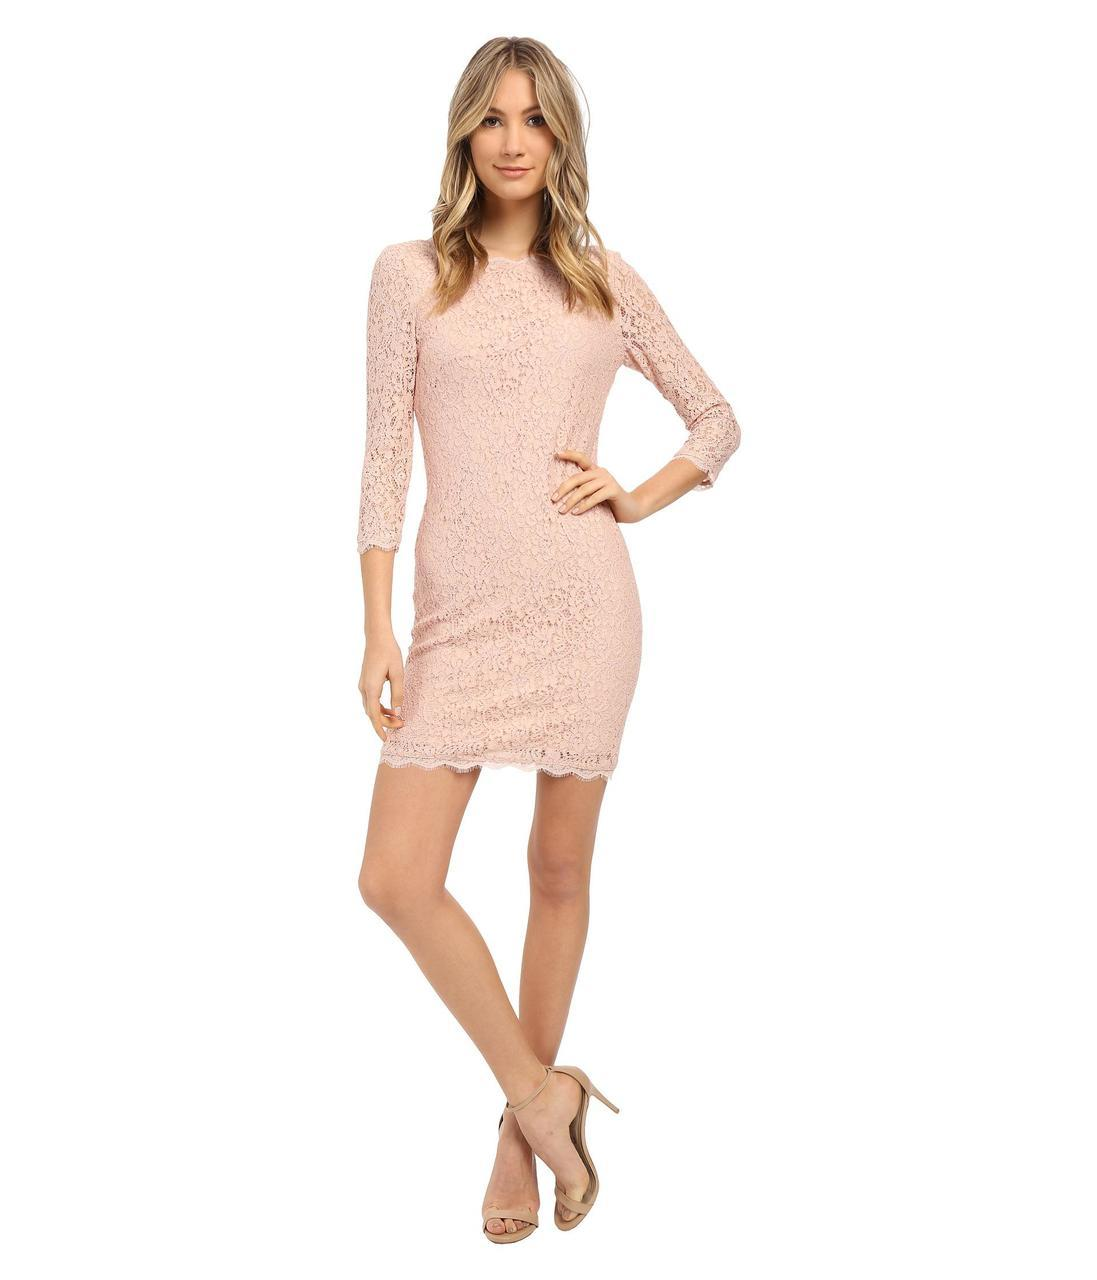 Adrianna Papell - Quarter Length Sleeve Lace Dress 41864780 in Pink